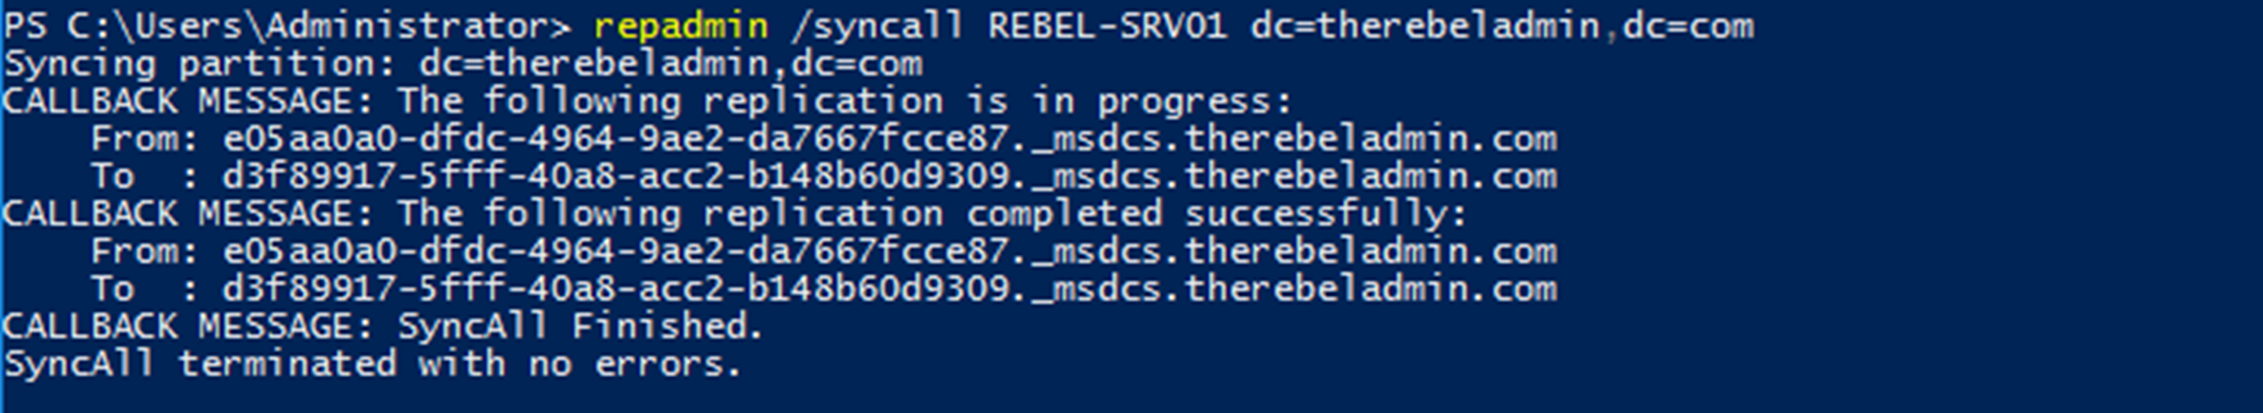 Troubleshooting Active Directory Replication Issues (PowerShell